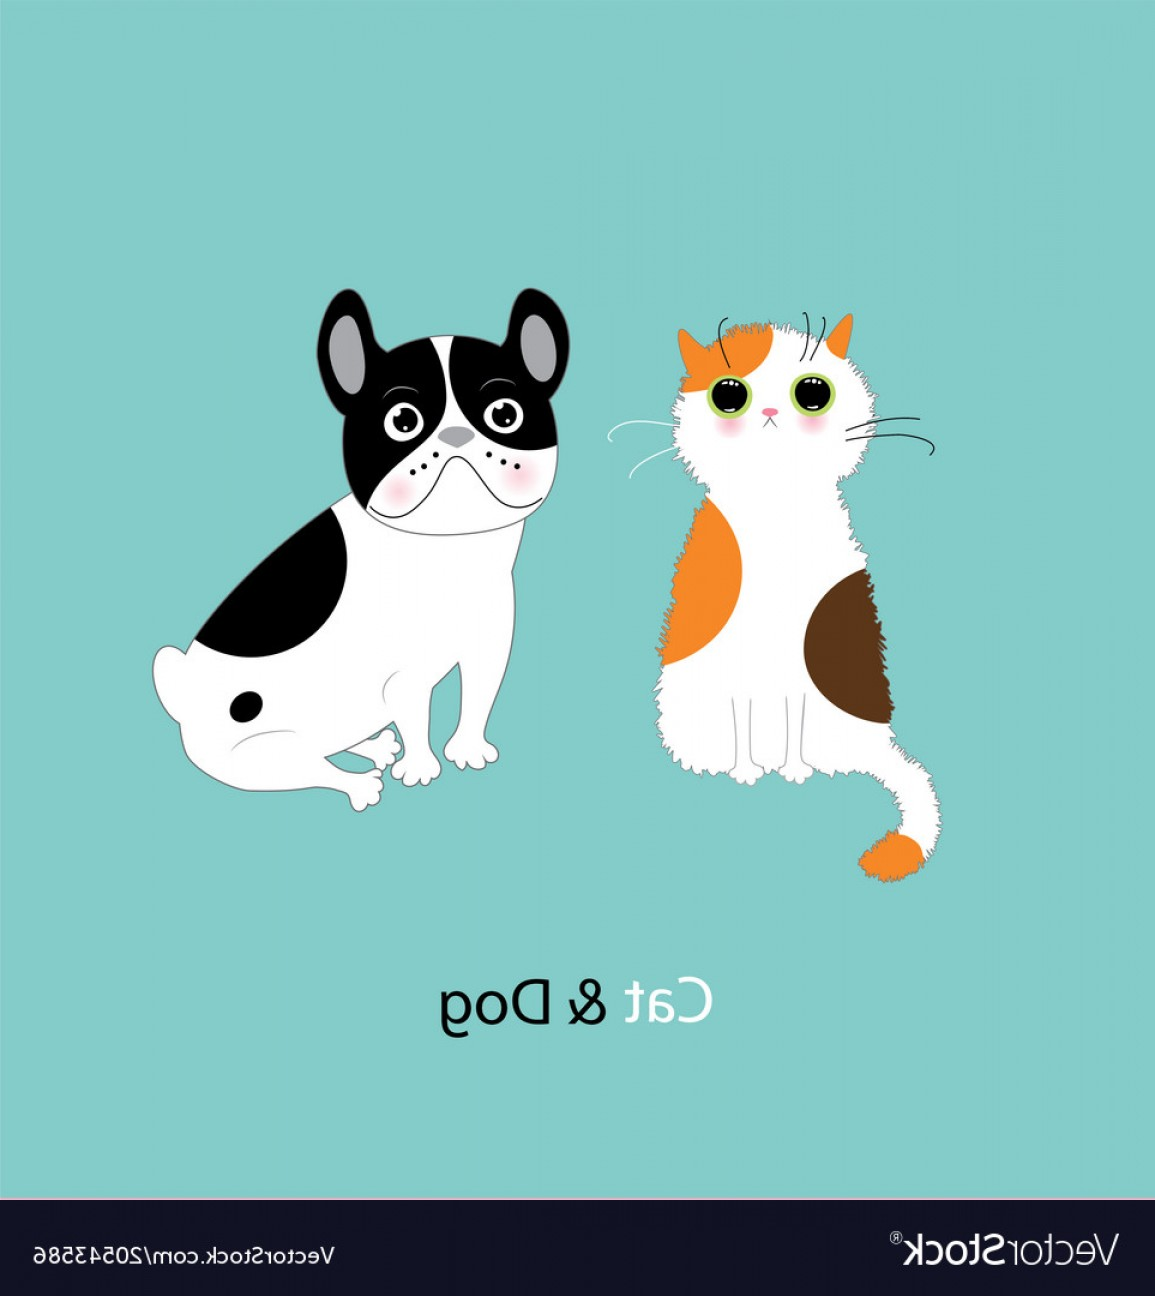 Dog And Cat Vector Illustration: Funny Dog And Cat Vector